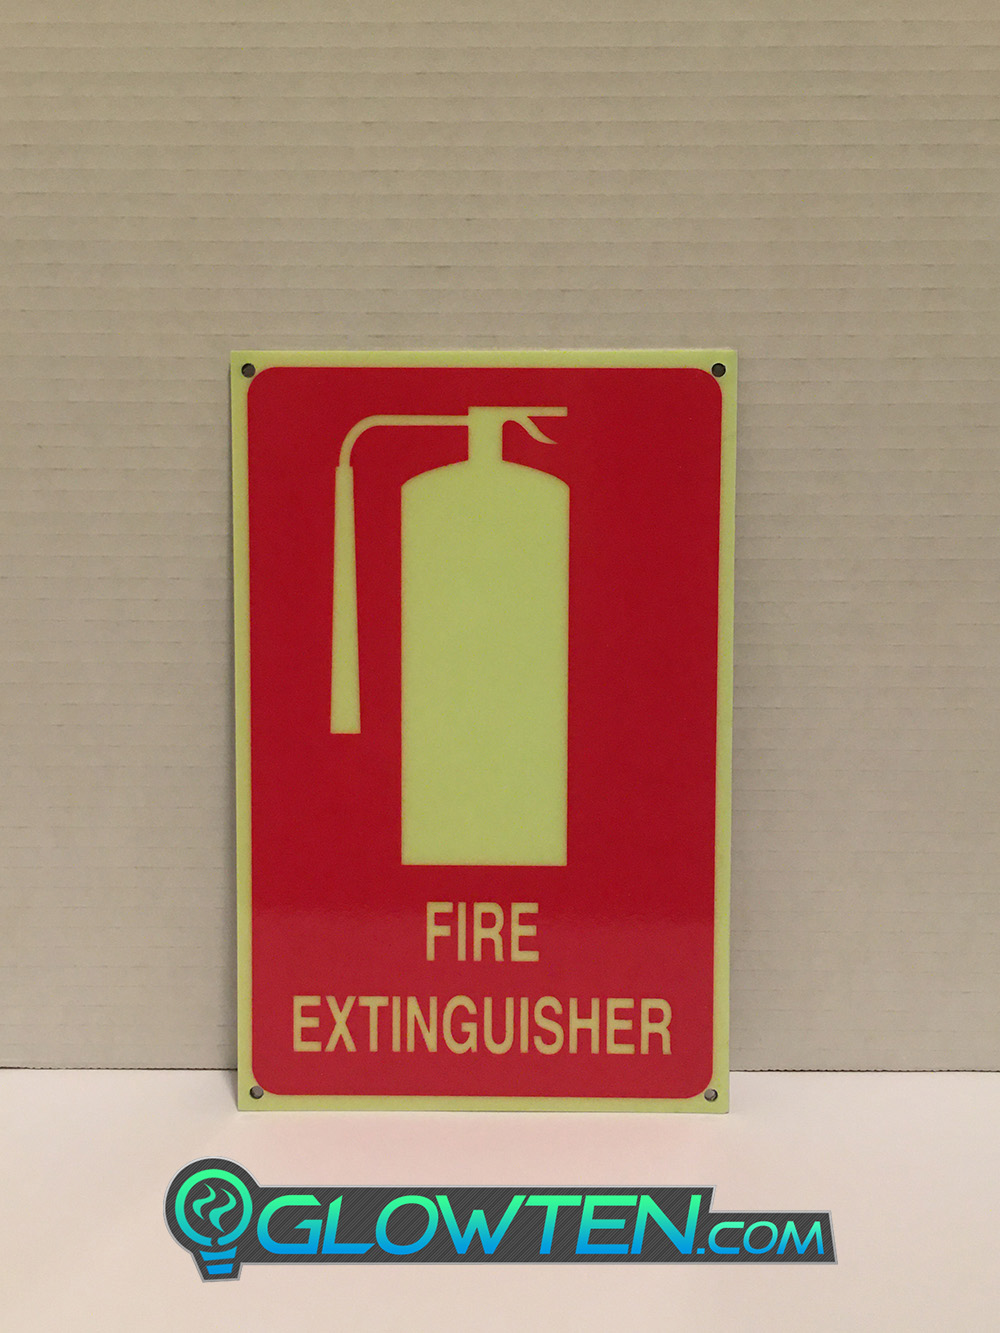 GLOWTEN.com - FIRE EXTINGUISHER SIGN Vertical Stand Alone Luminous Fluorescent Glow in the Dark Eco Friendly Photoluminescent Material Green Do all fire doors need signage picture photo cap preview pic 6